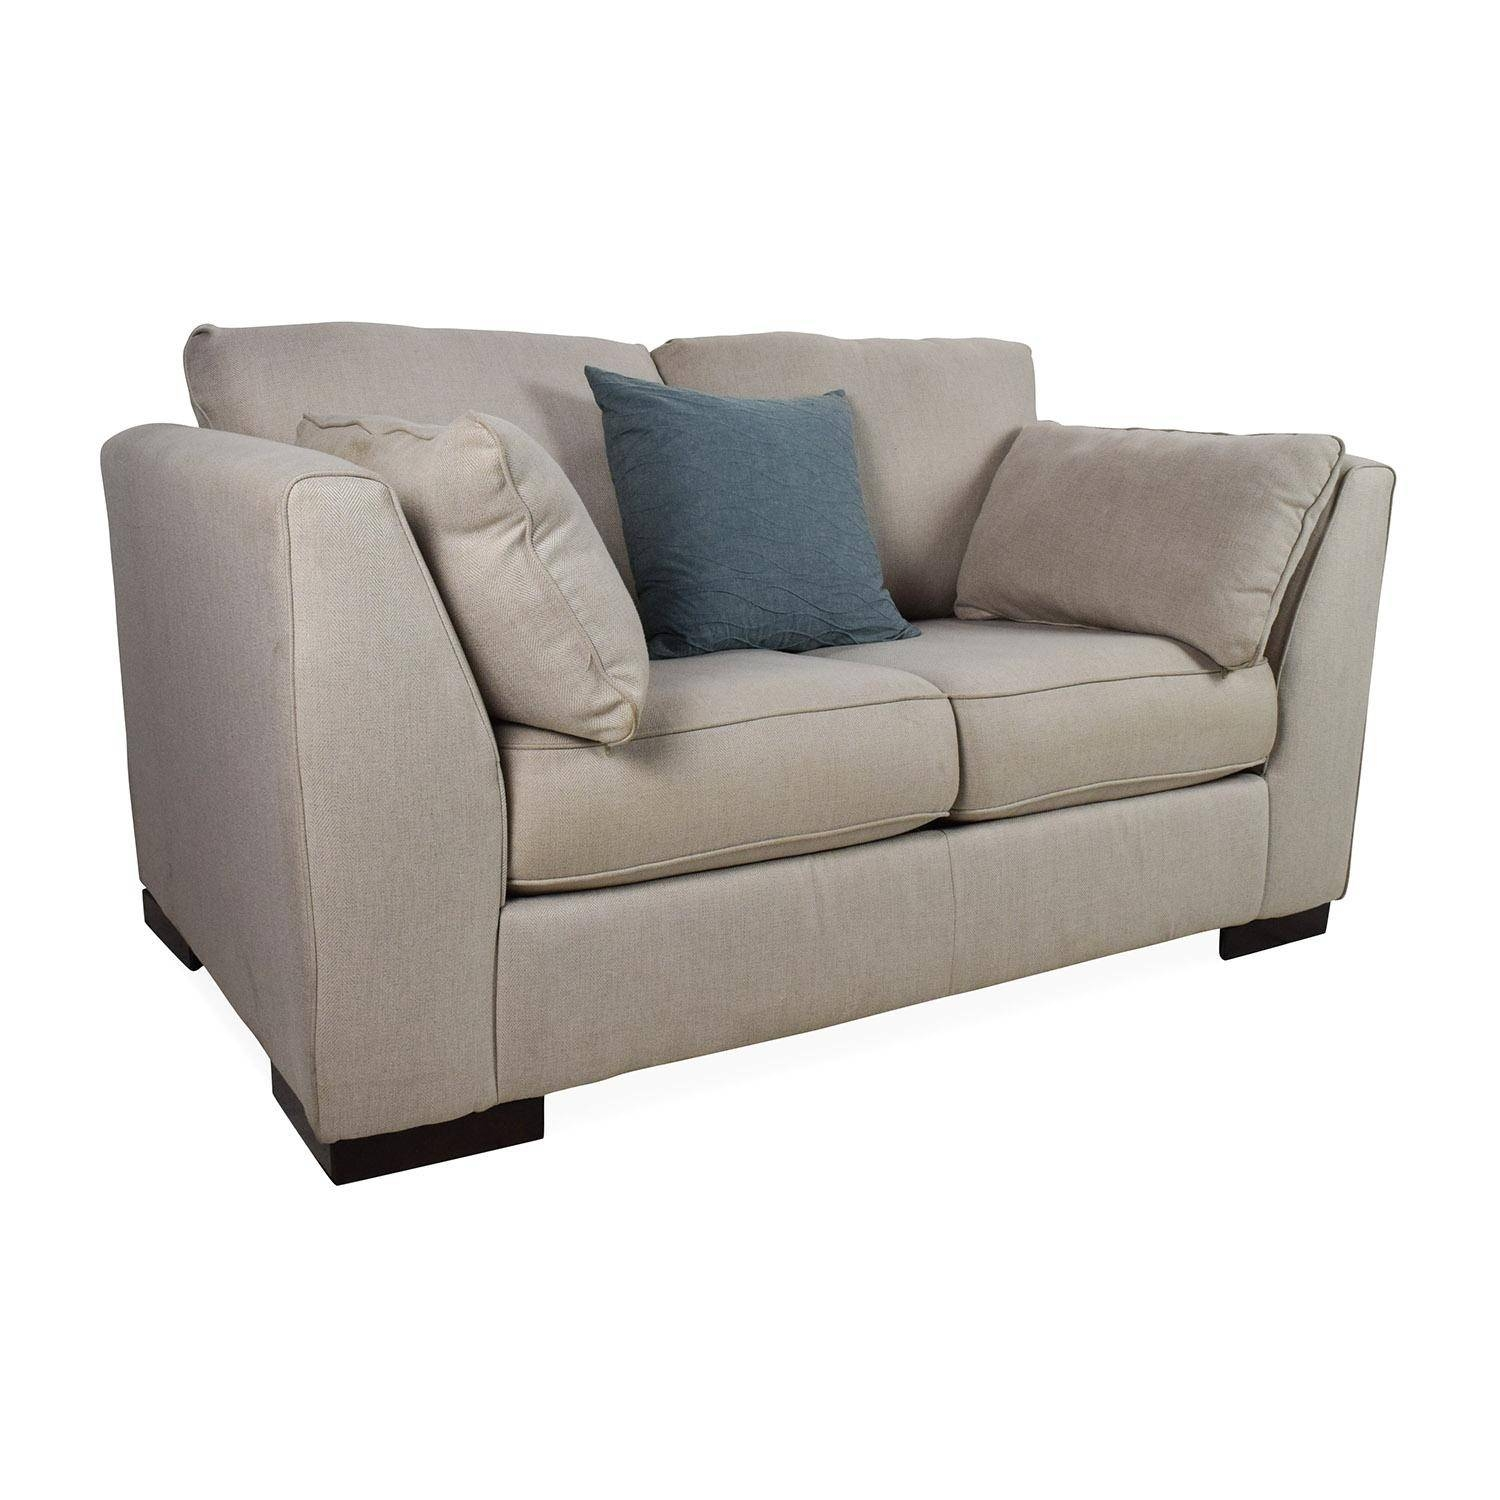 20+ Choices Of Pier 1 Sofa Beds   Sofa Ideas with Pier 1 Sofa Beds (Image 5 of 15)